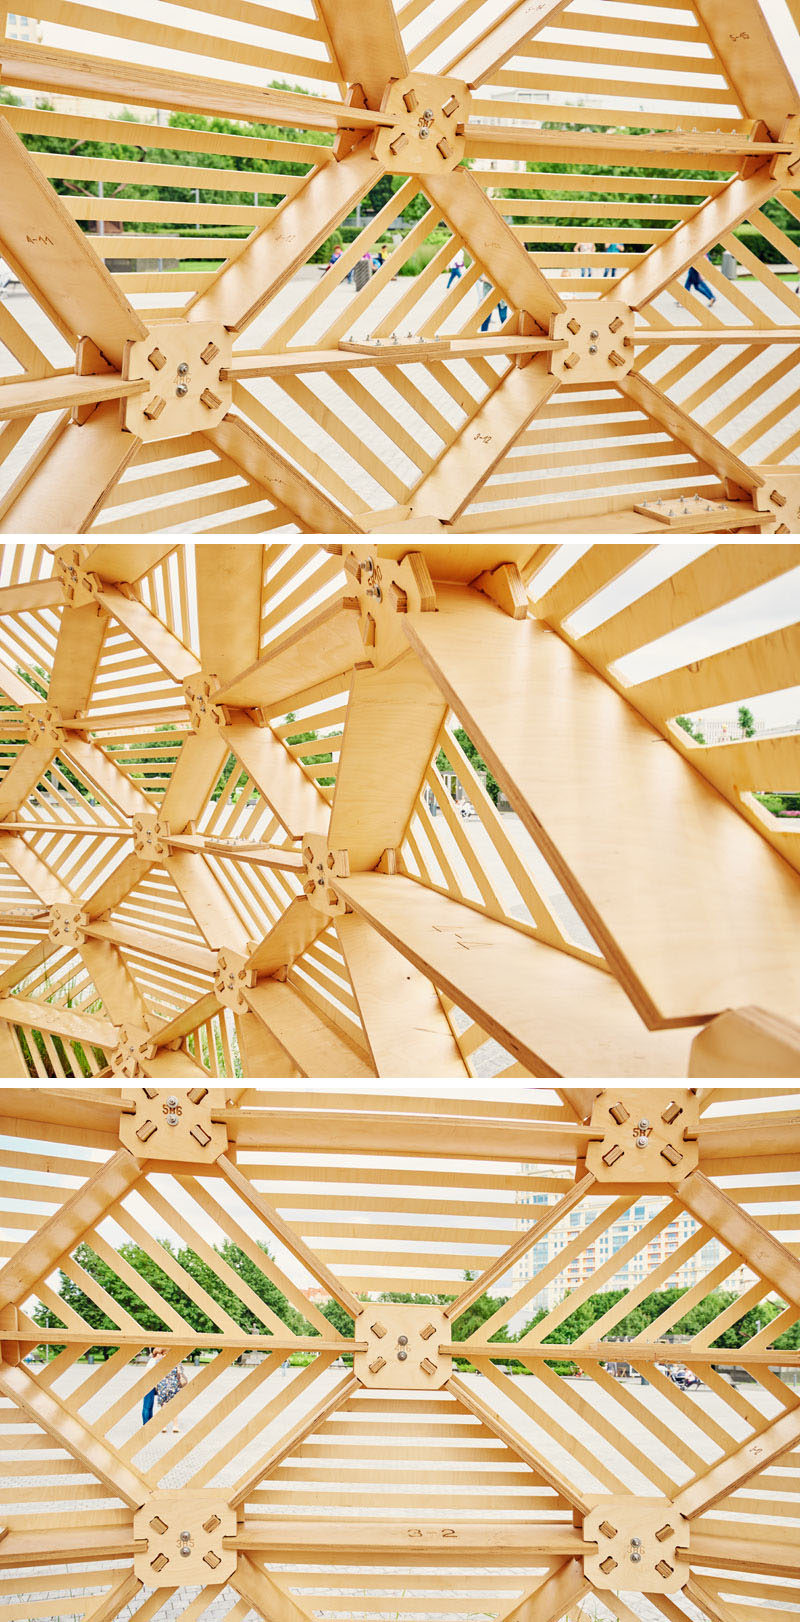 Russian designer Vlad Kissel, has created a modern wood pavilion in Moscow, Russia, that has a drop-like shape that references early Slavonic aesthetics.